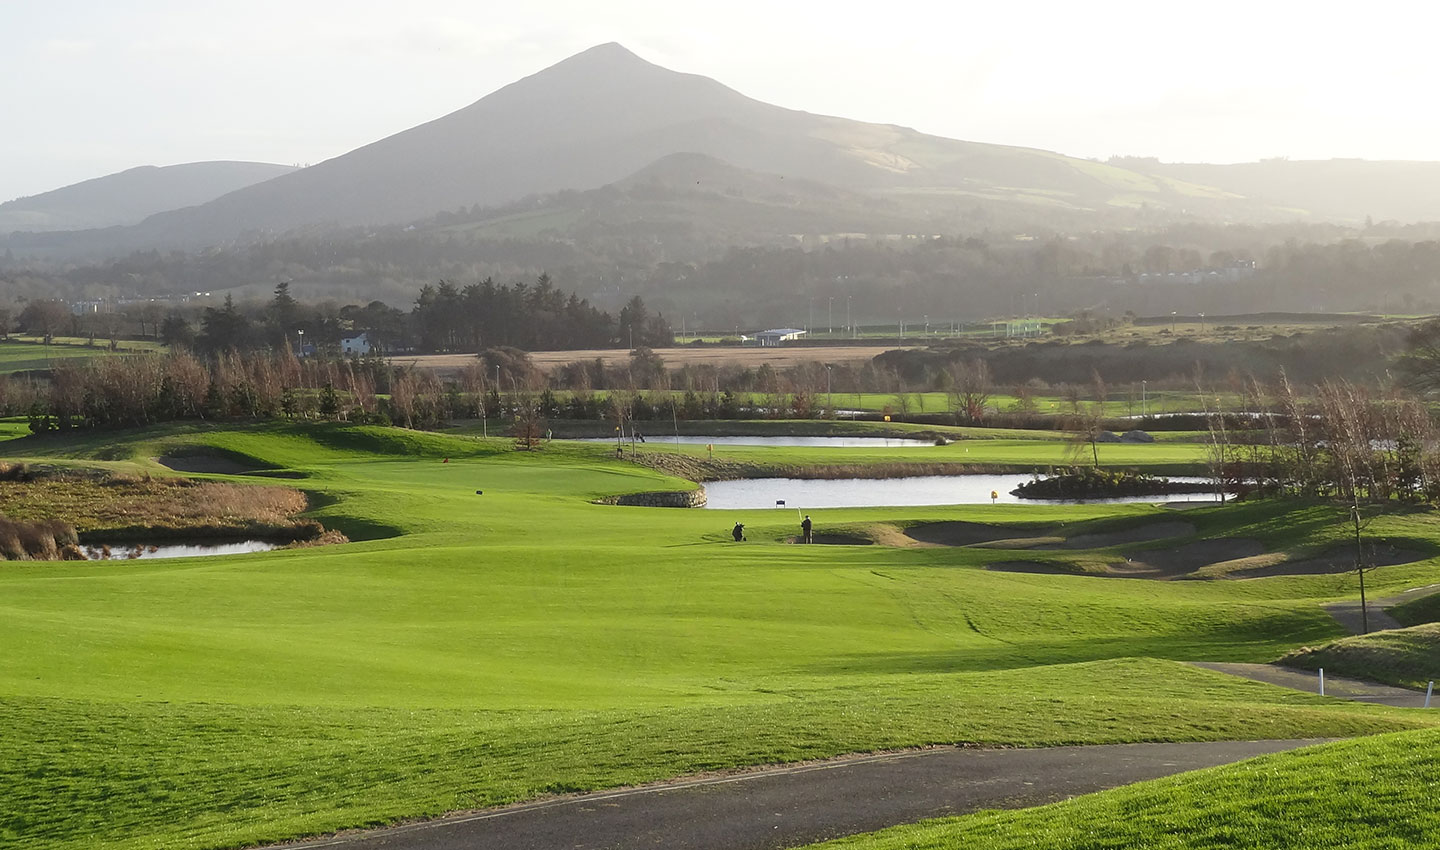 Laoghaire Golf Course